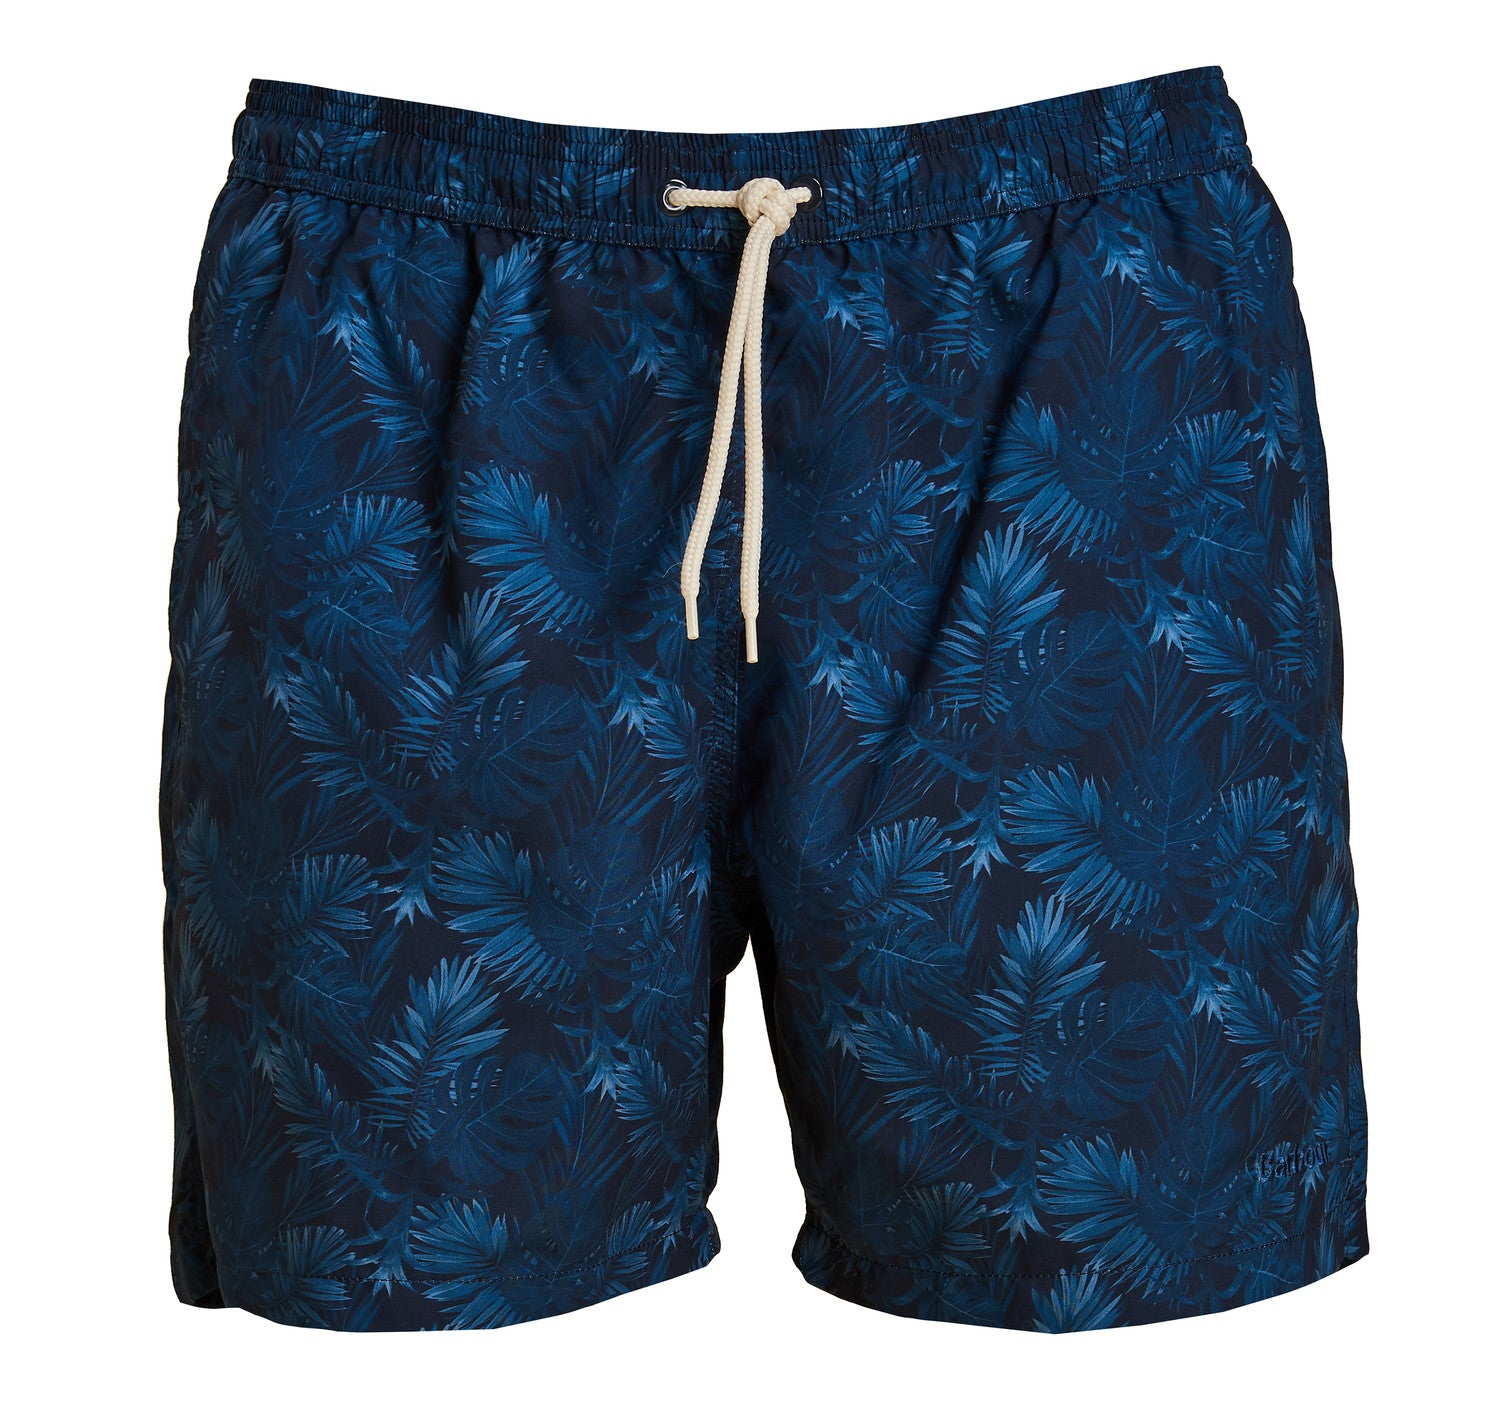 ID7034-Barbour Blue  Tropical Swim Shorts